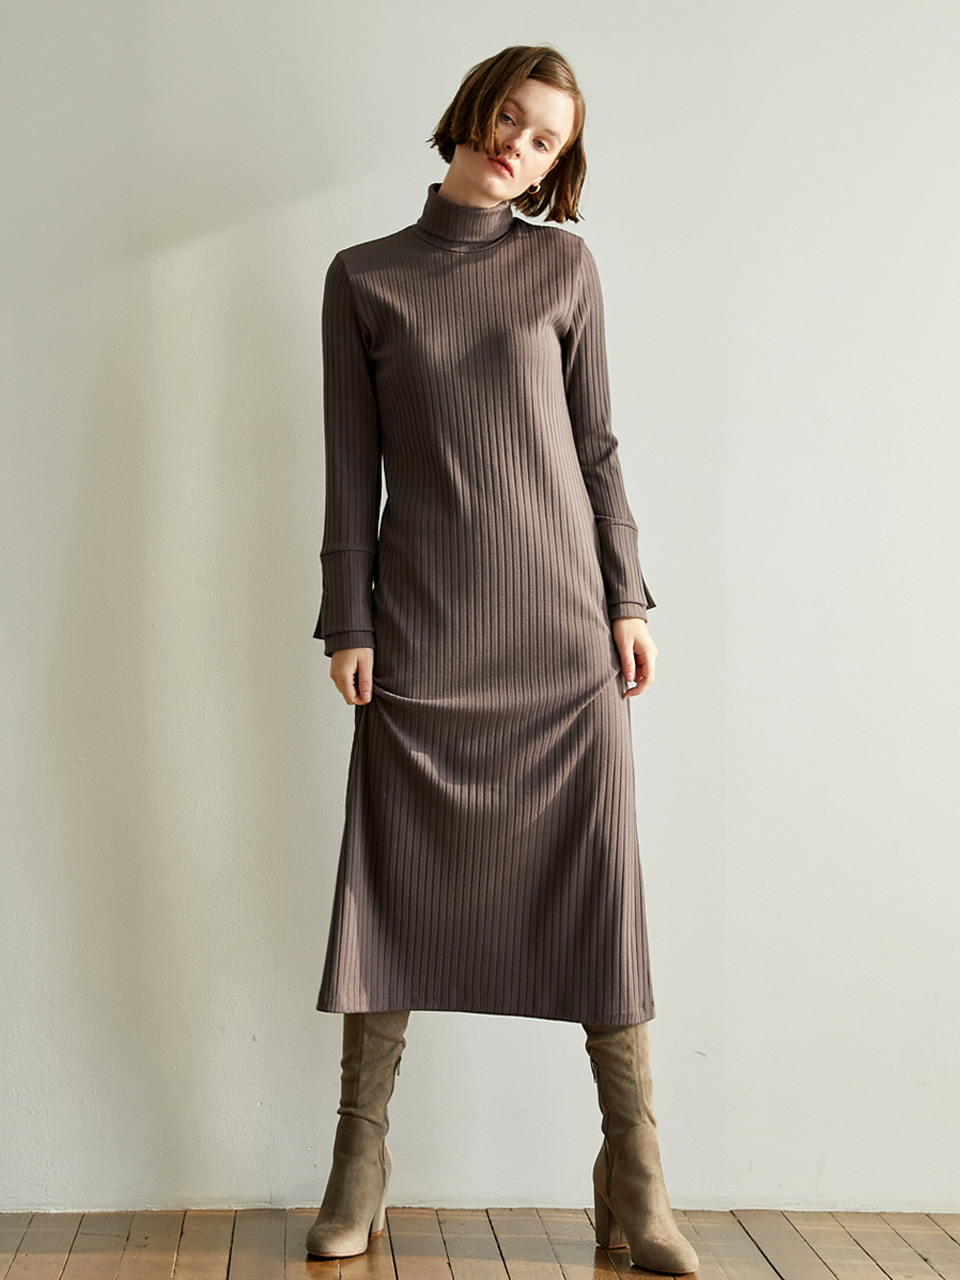 Layered Sleeve Long Dress [Cocoa Brown]